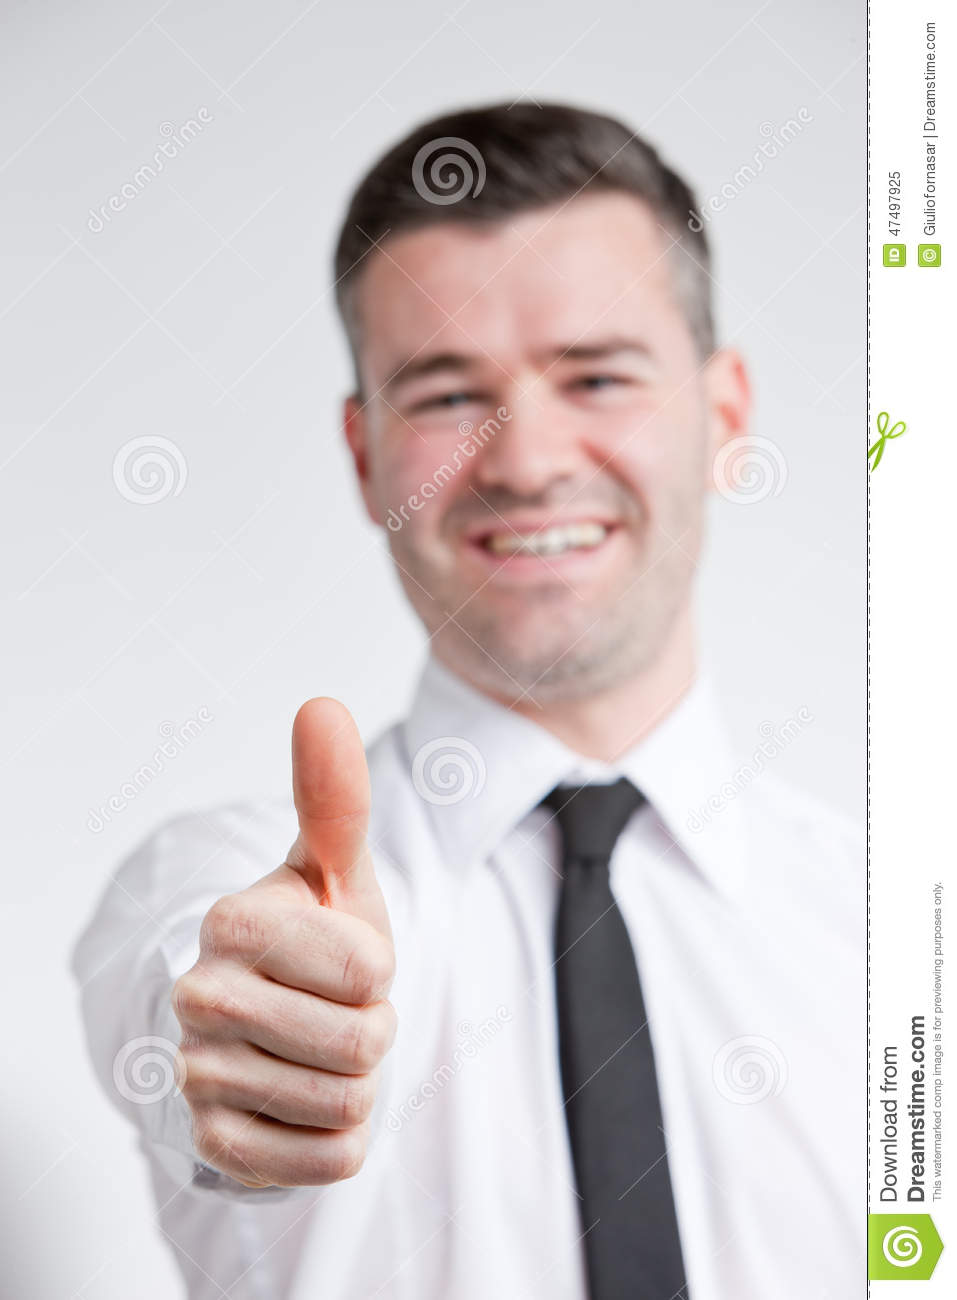 Thumb up for happy young man